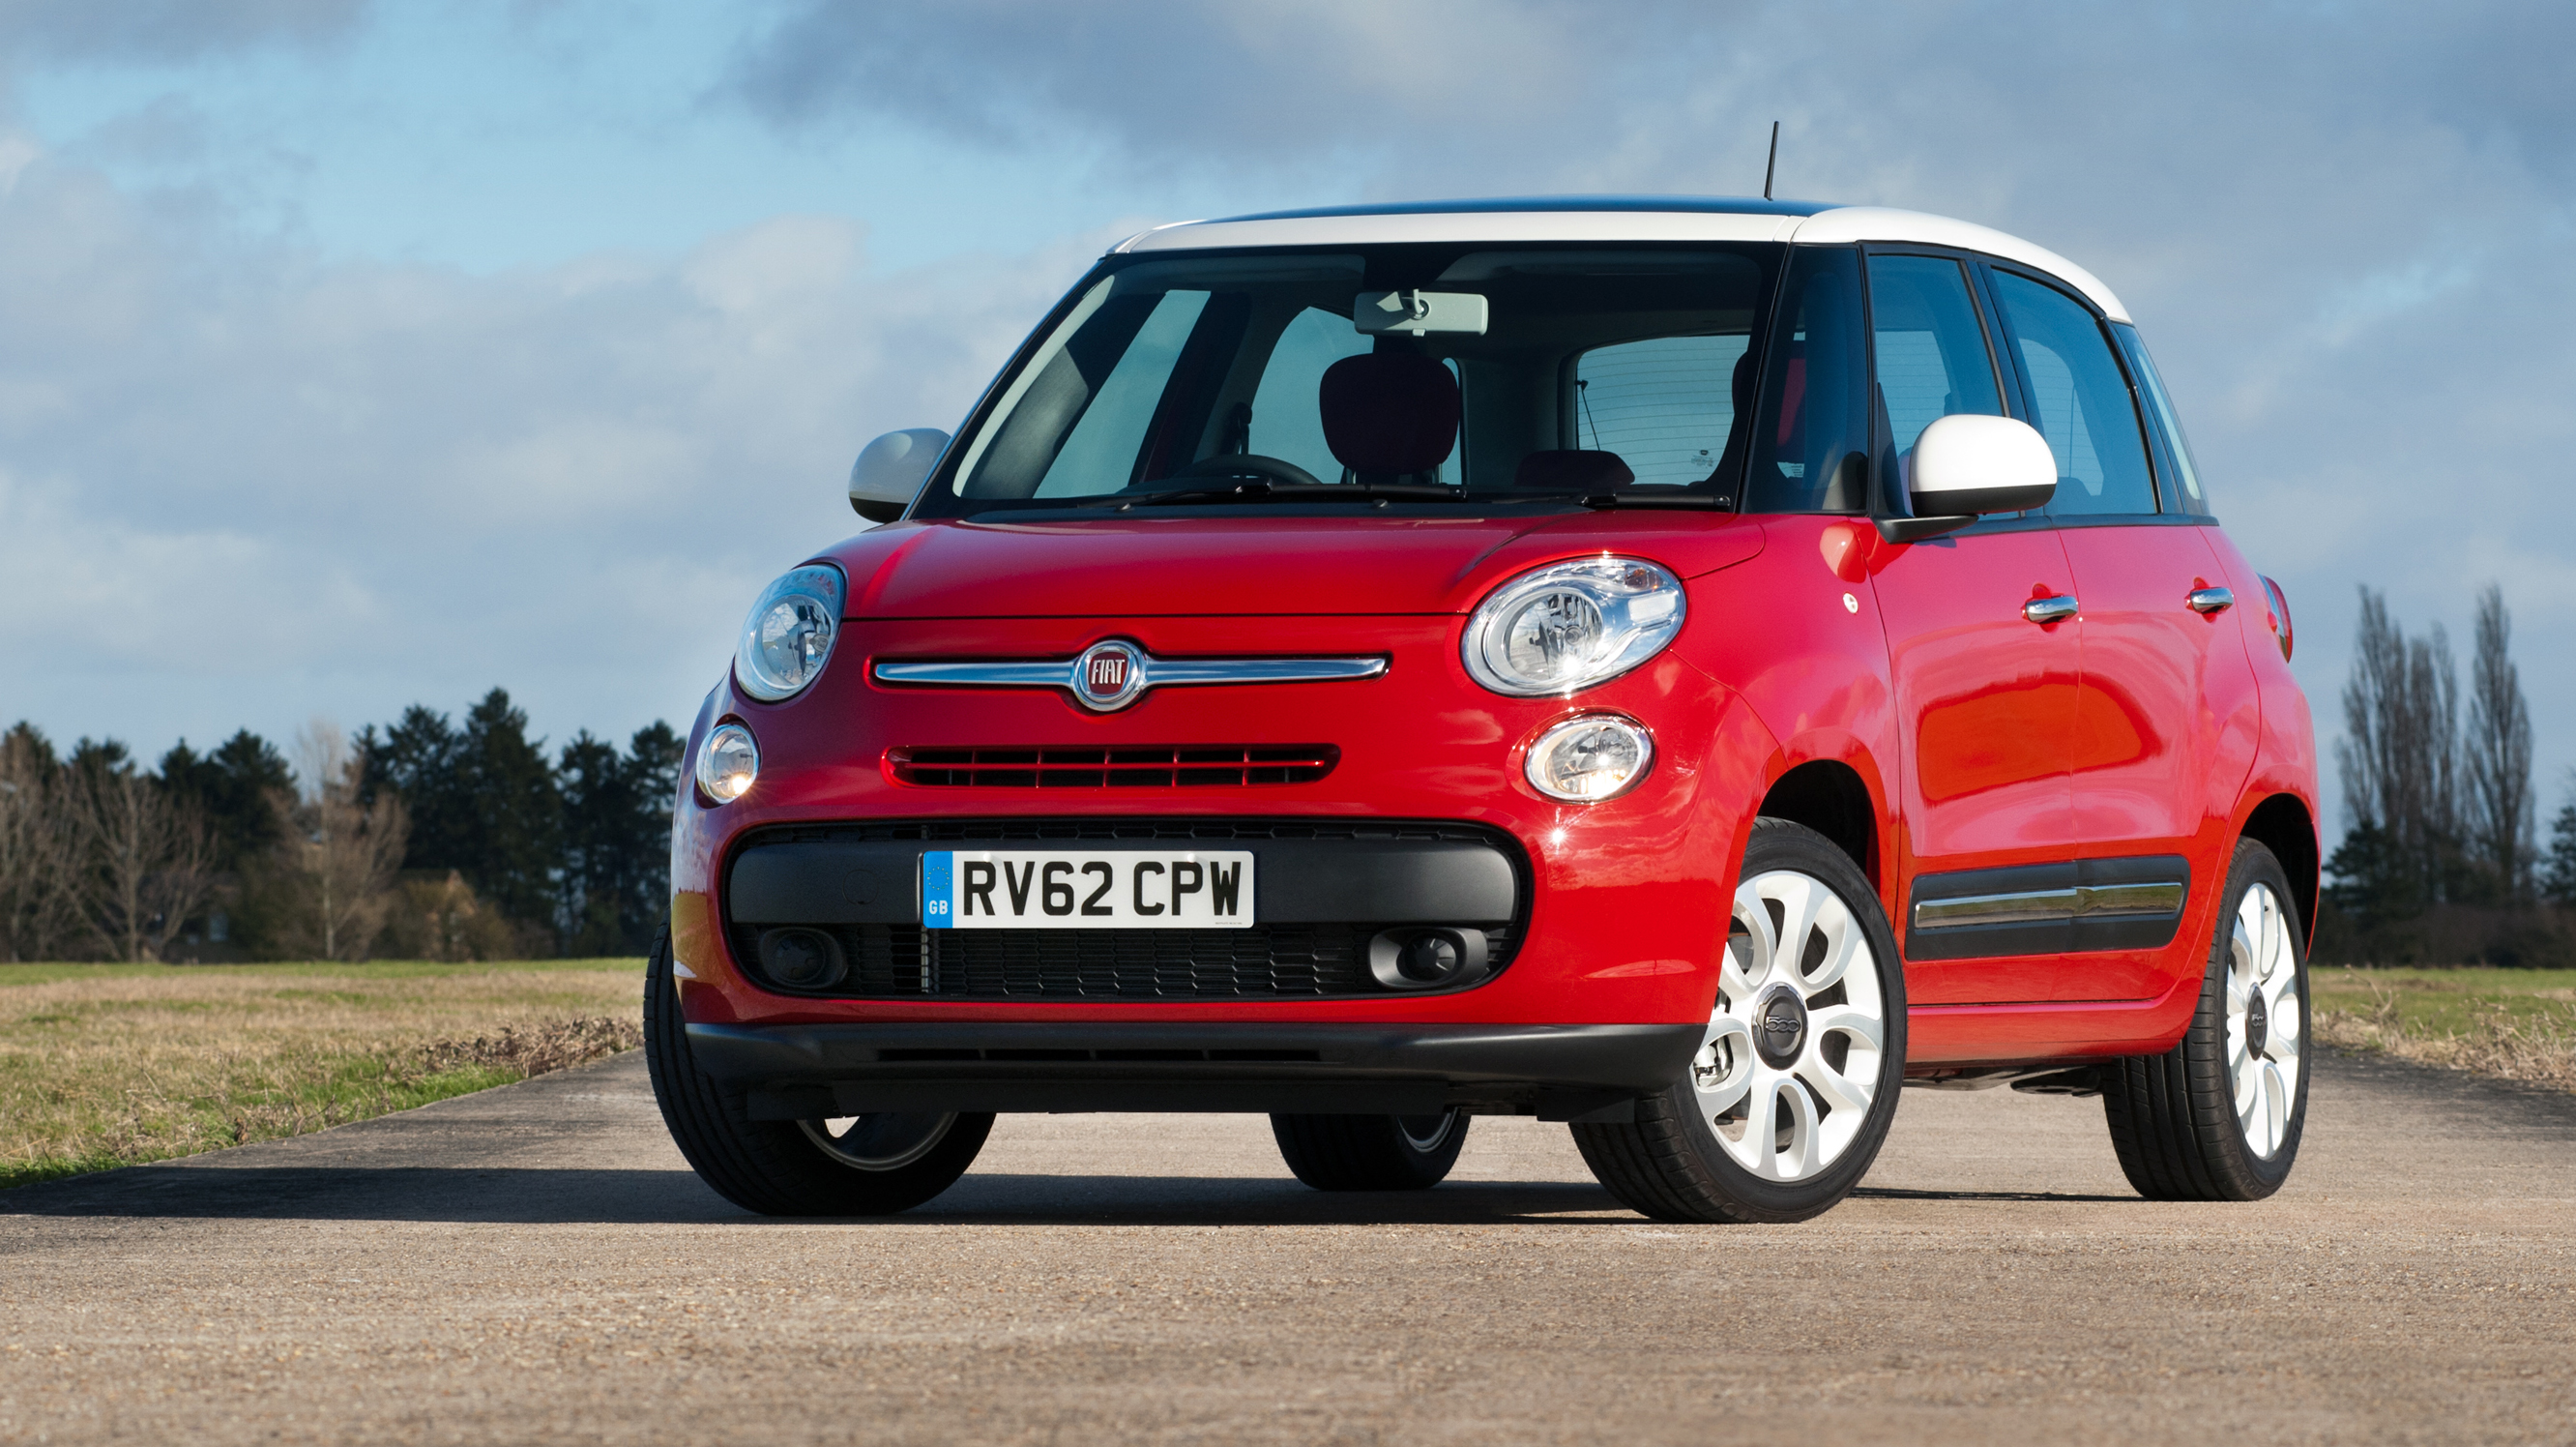 press group the on fiat lounge red in new uk sale images automobiles goes article